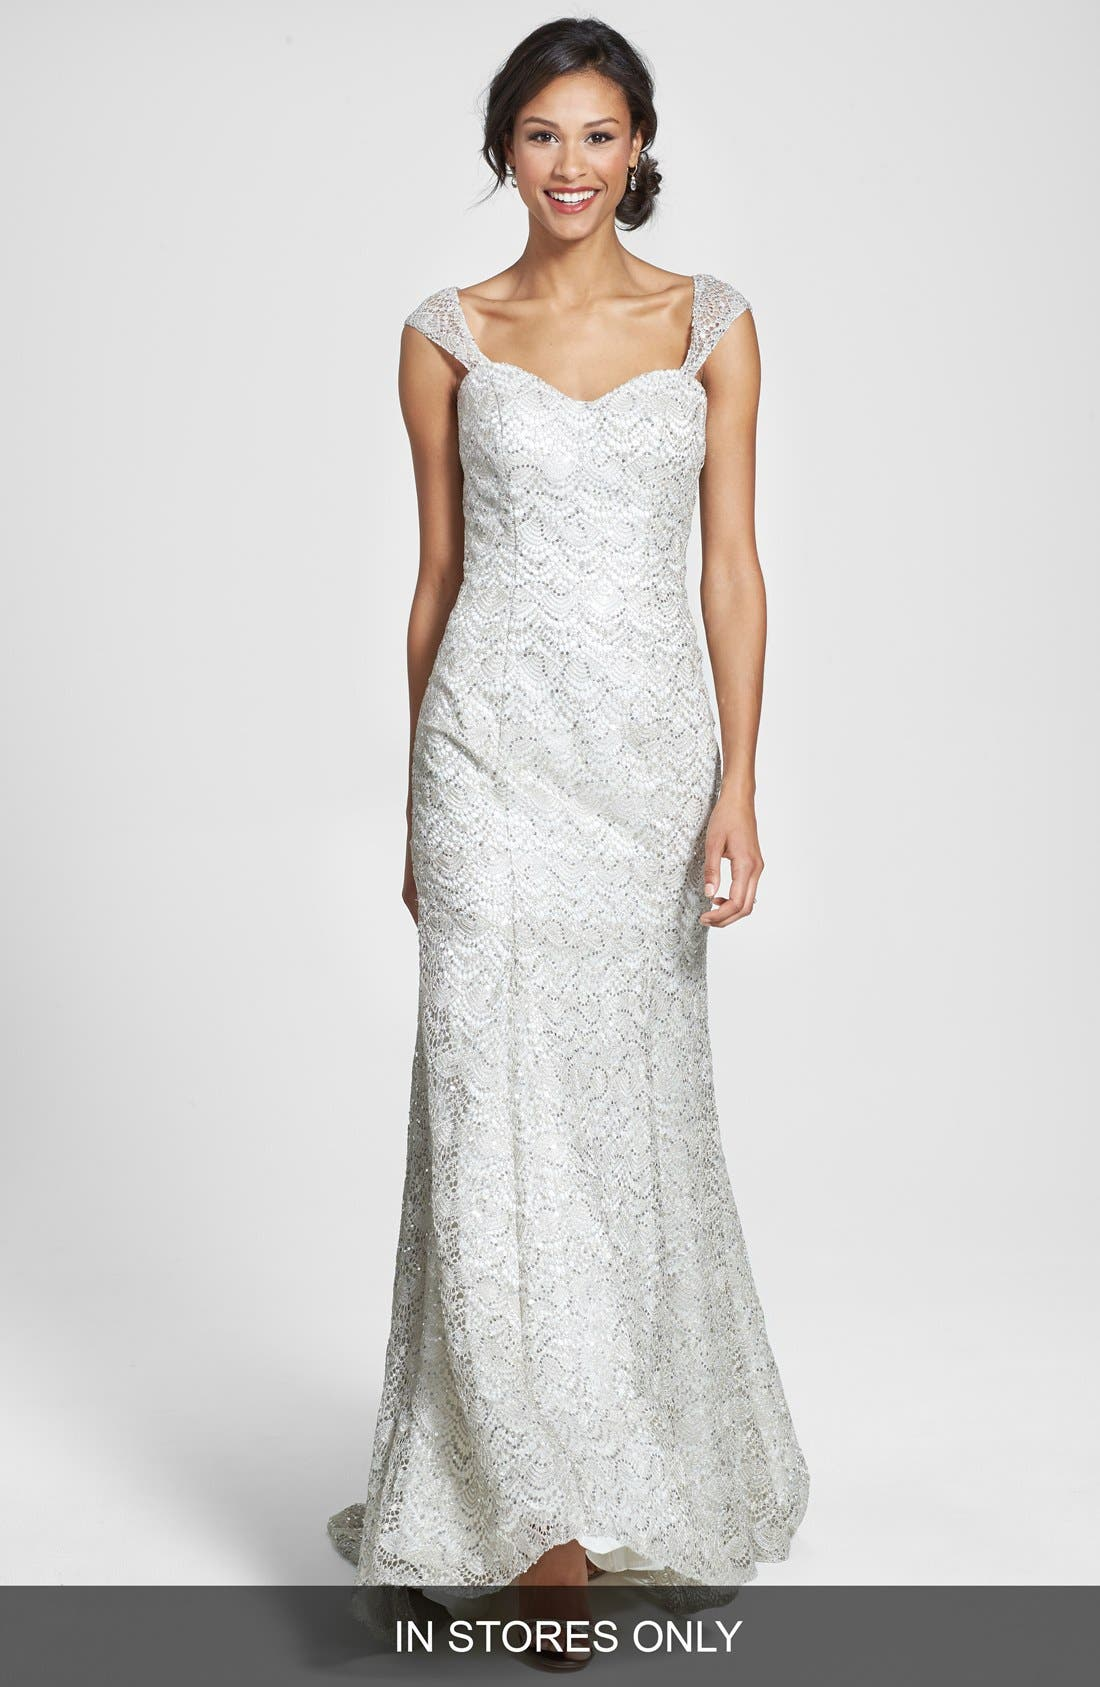 Main Image - Olia Zavozina Beaded Metallic Lace Gown (In Stores Only)